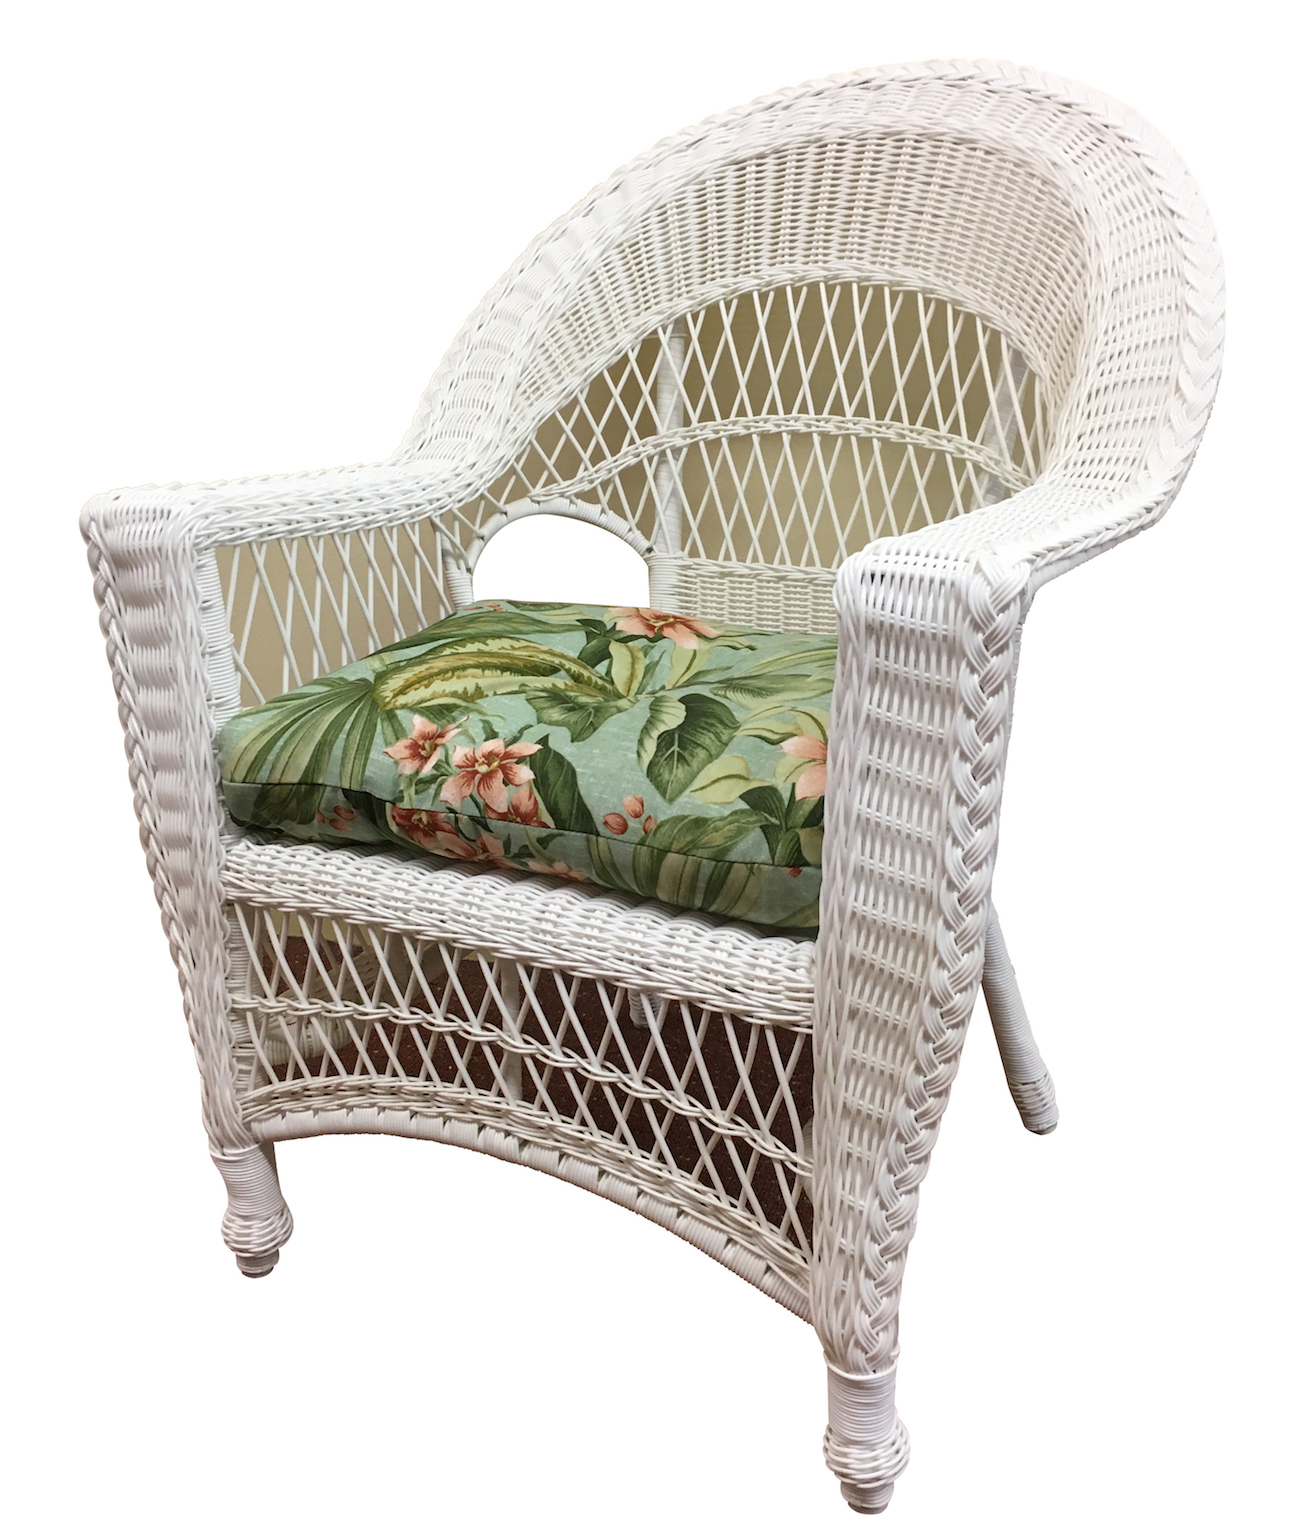 Stunning wicker chairs outdoor wicker chair - cape cod yzjujrq